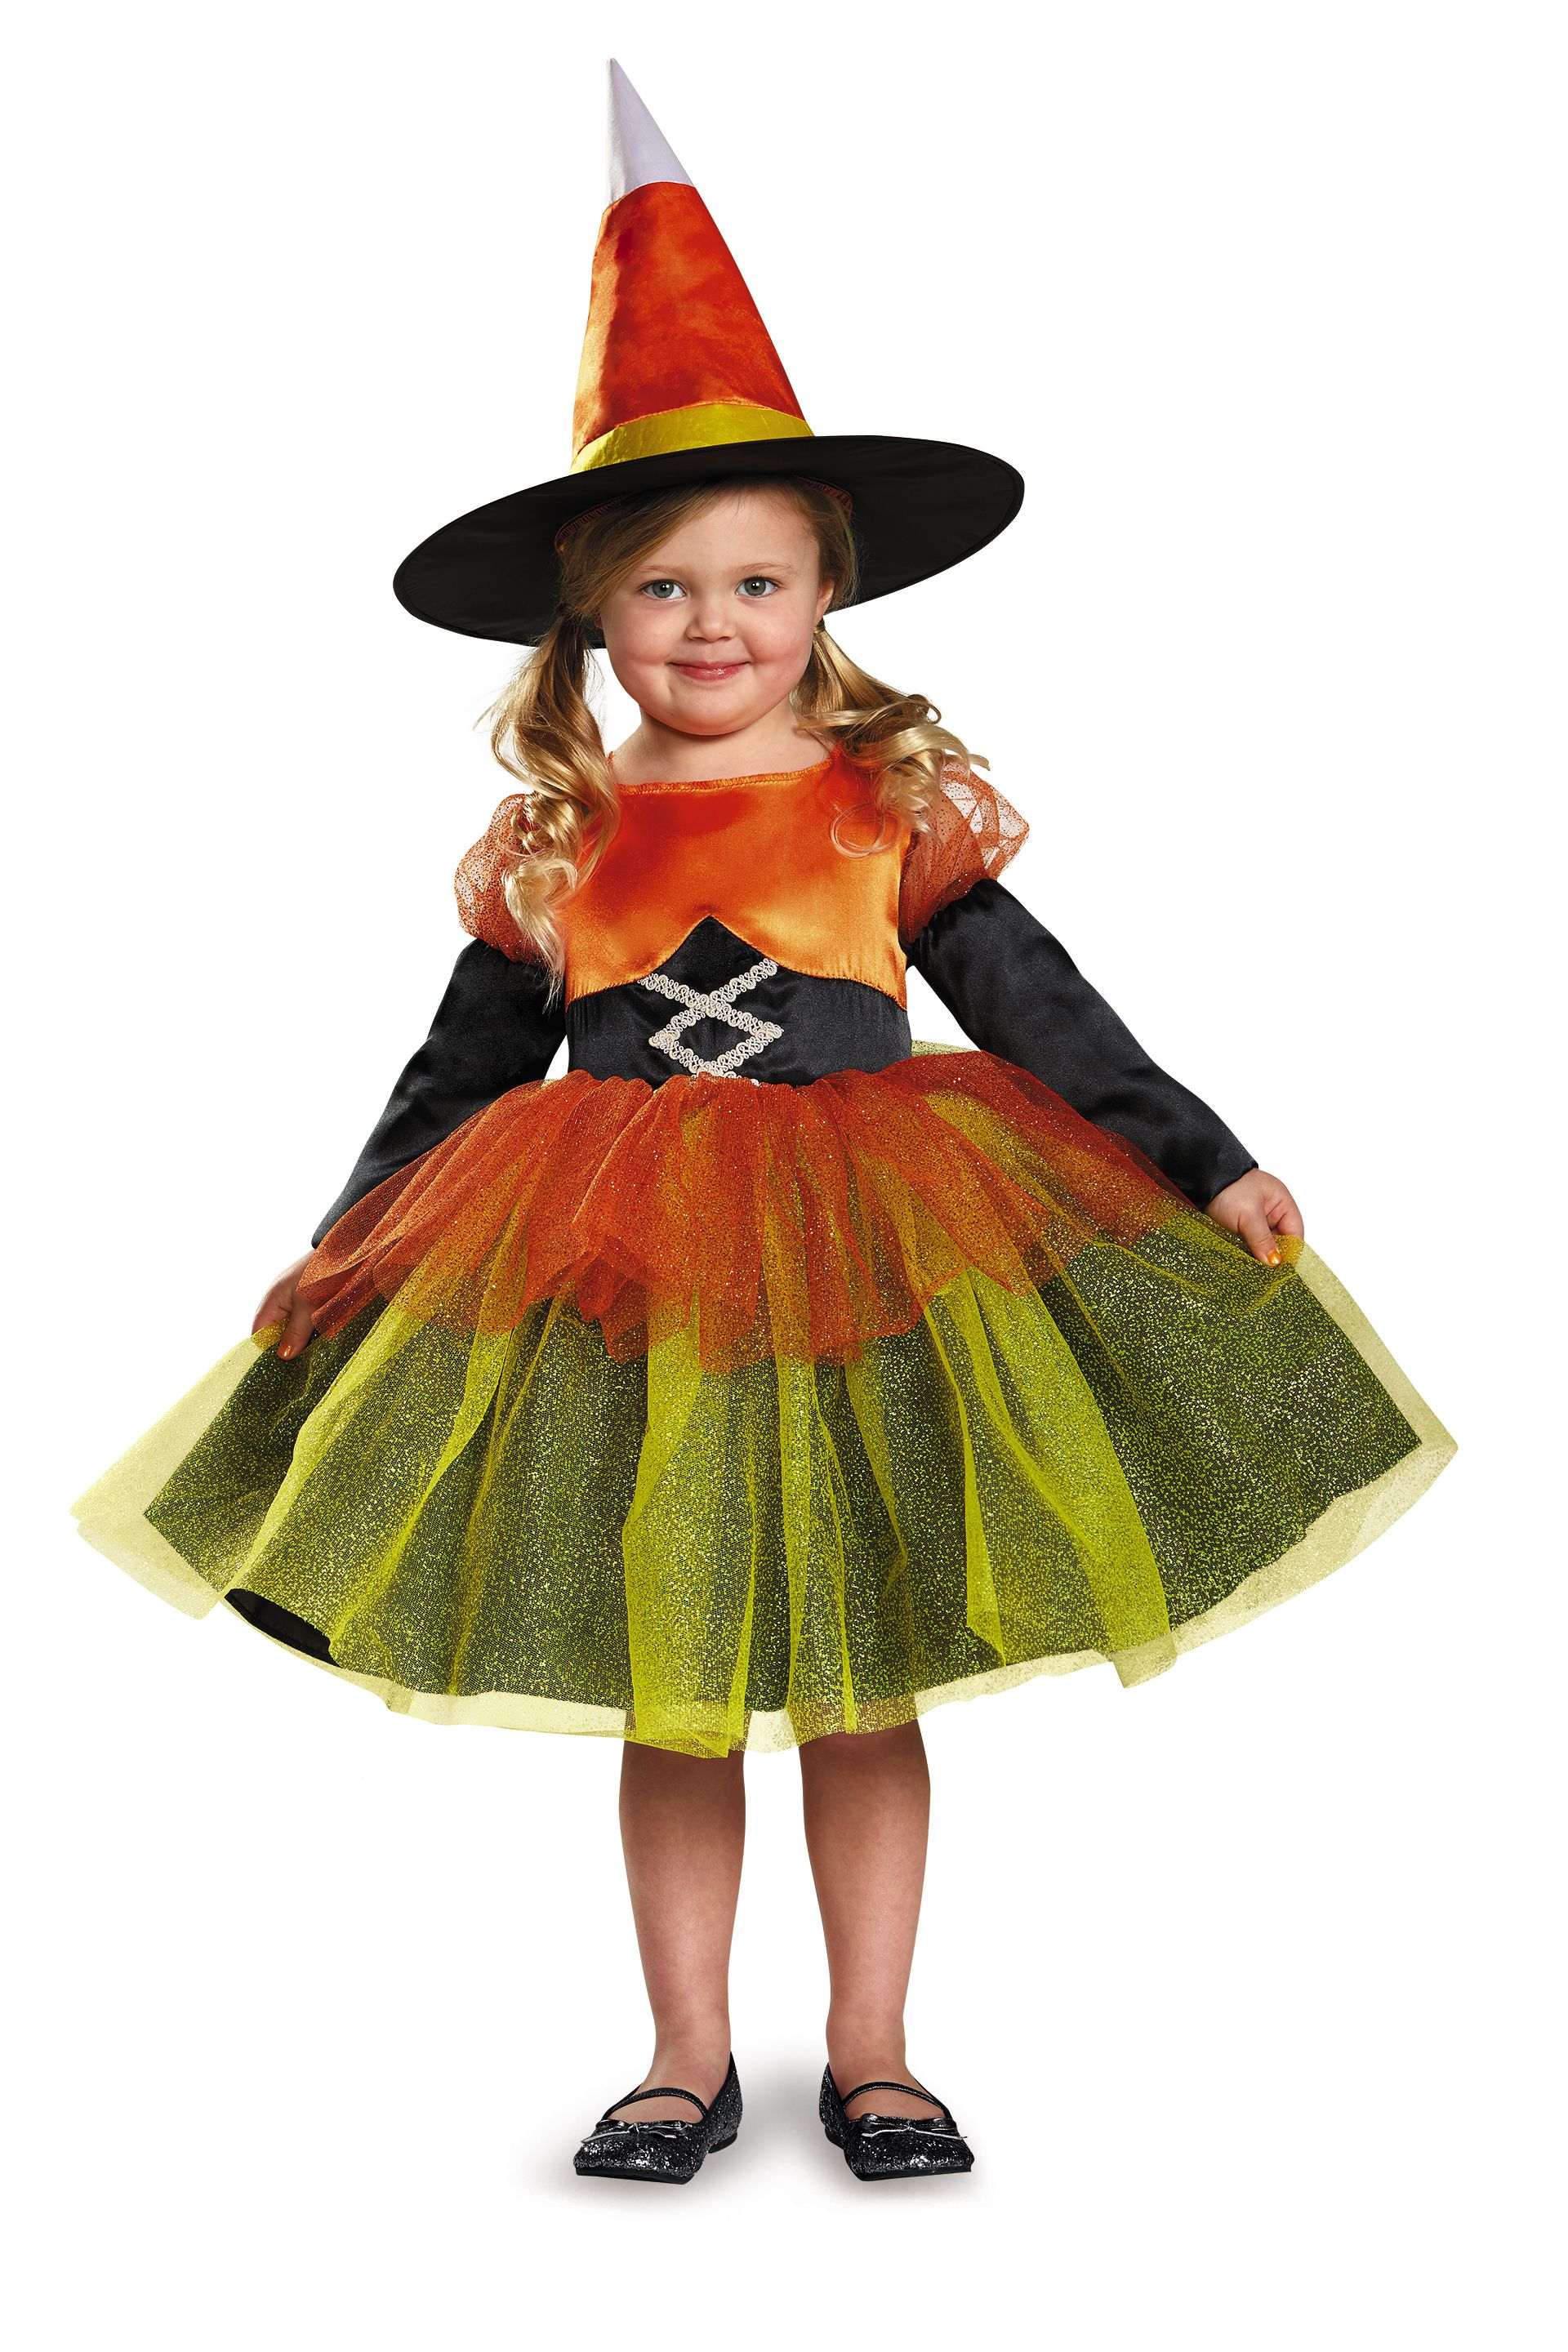 Candy Corn Witch Generic Toddler Costume Disguise Inc.  sc 1 st  Pinterest & Candy Corn Witch Generic Toddler Costume Disguise Inc. | 2016 ...